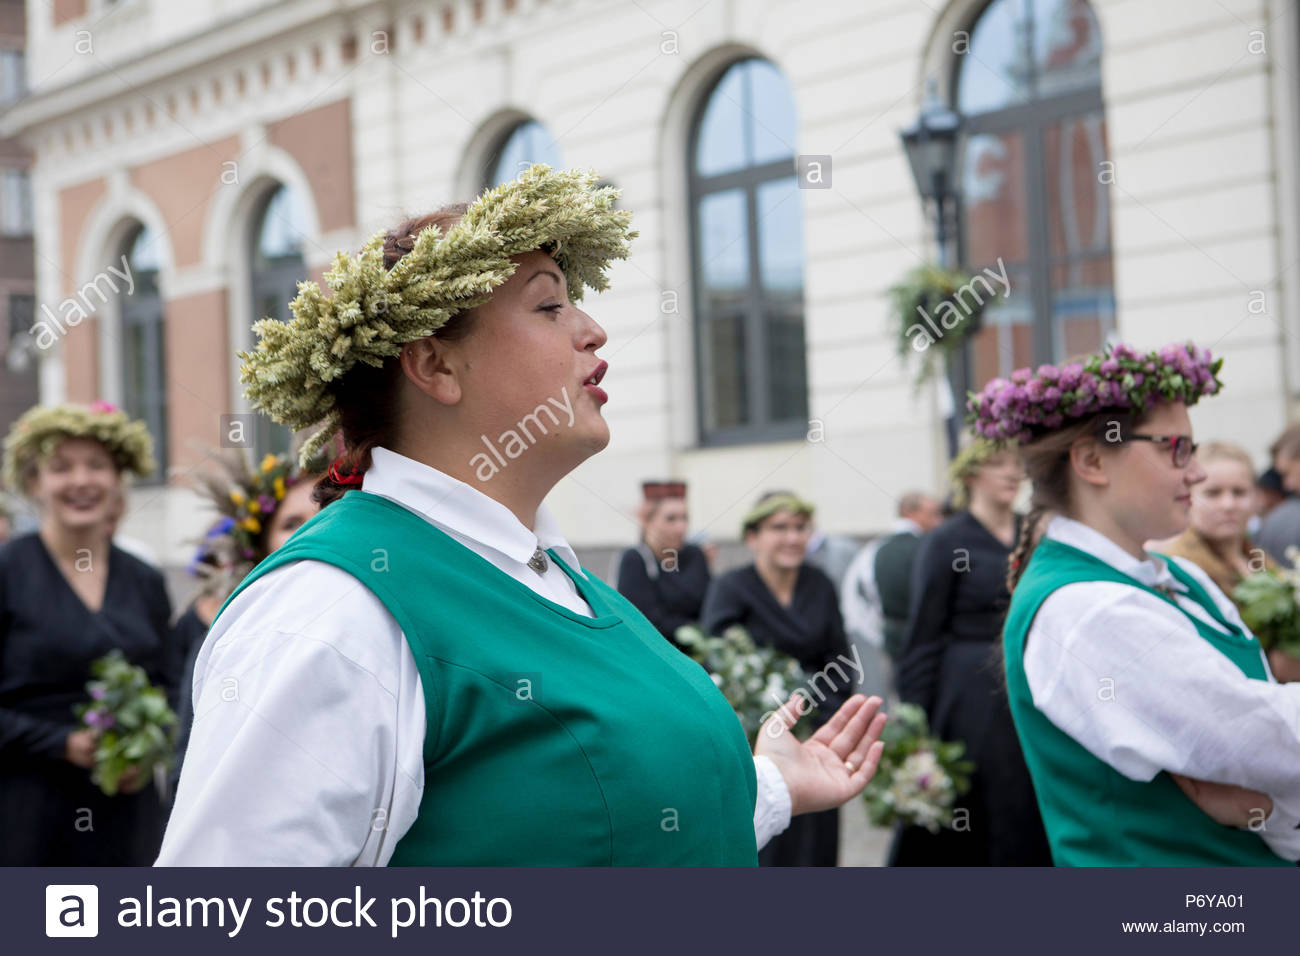 The annual Song and Dance festival takes place in Riga on the 1st week of July. In 2018, Latvia also celebrates the 100th anniversary of its birth. - Stock Image